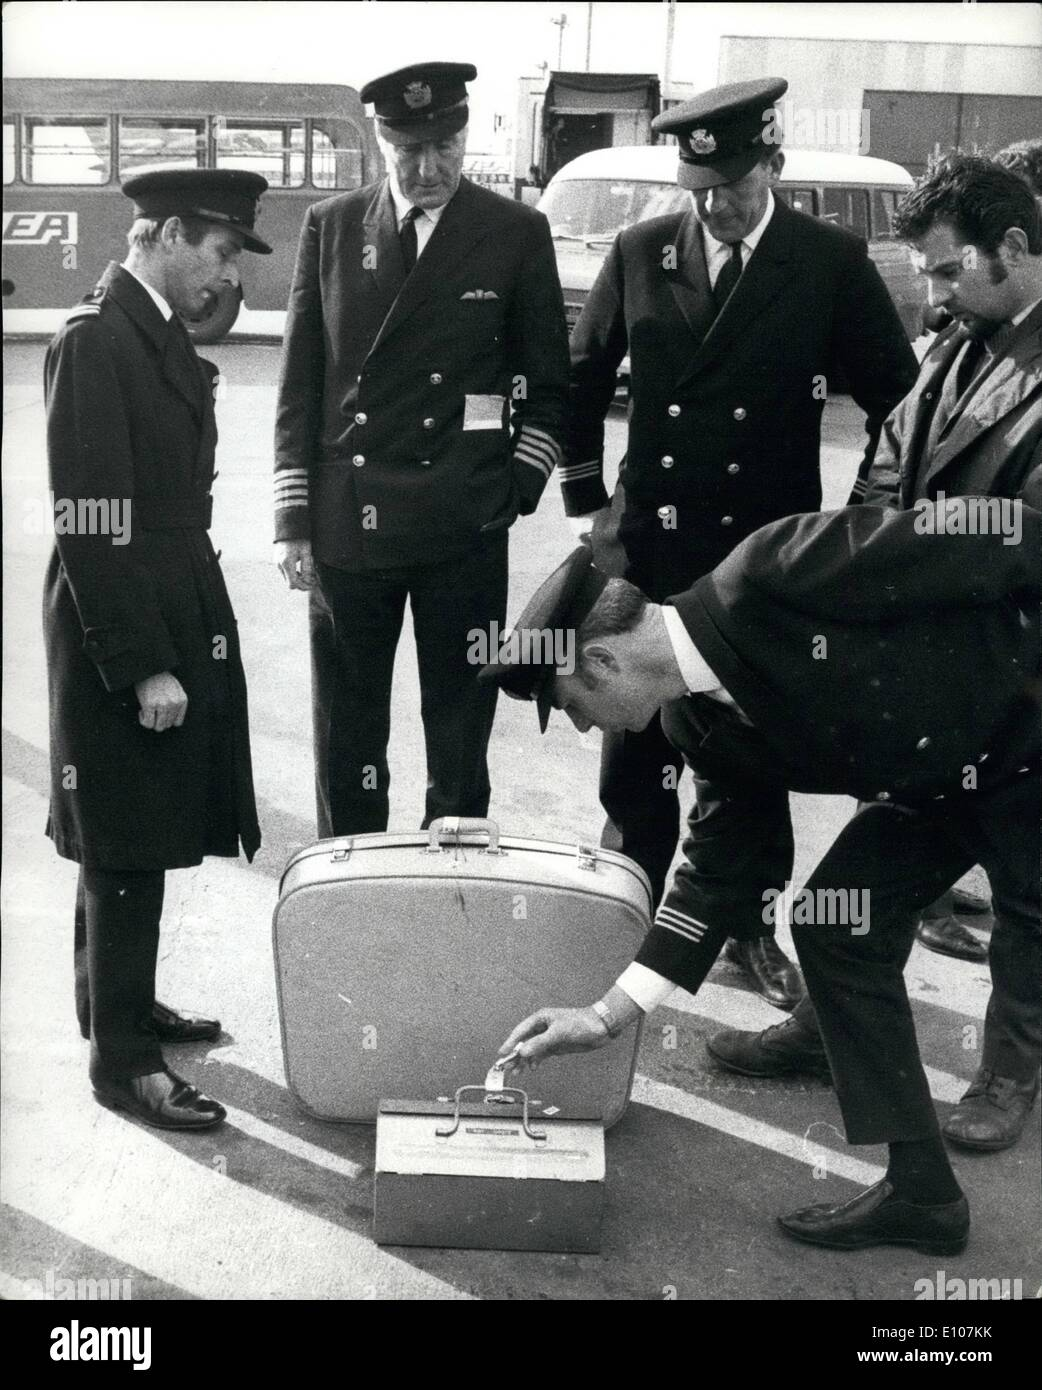 Feb. 02, 1970 - Luggage Identified by passengers before going aboard Airliner: Baggage was identified by passengers at Hearthrow yesterday before being taken aboard a BEA Trident bound for Athens and Tel Aviv. The luggage had been off-loaded from another Trident when the pilot, Captain James Bell, decided not to take off because the Earl and Countess of Gainsborough had refused to fly in the plane. Captain Bell (second from left) is seen watching as unclaimed items were examined. - Stock Image